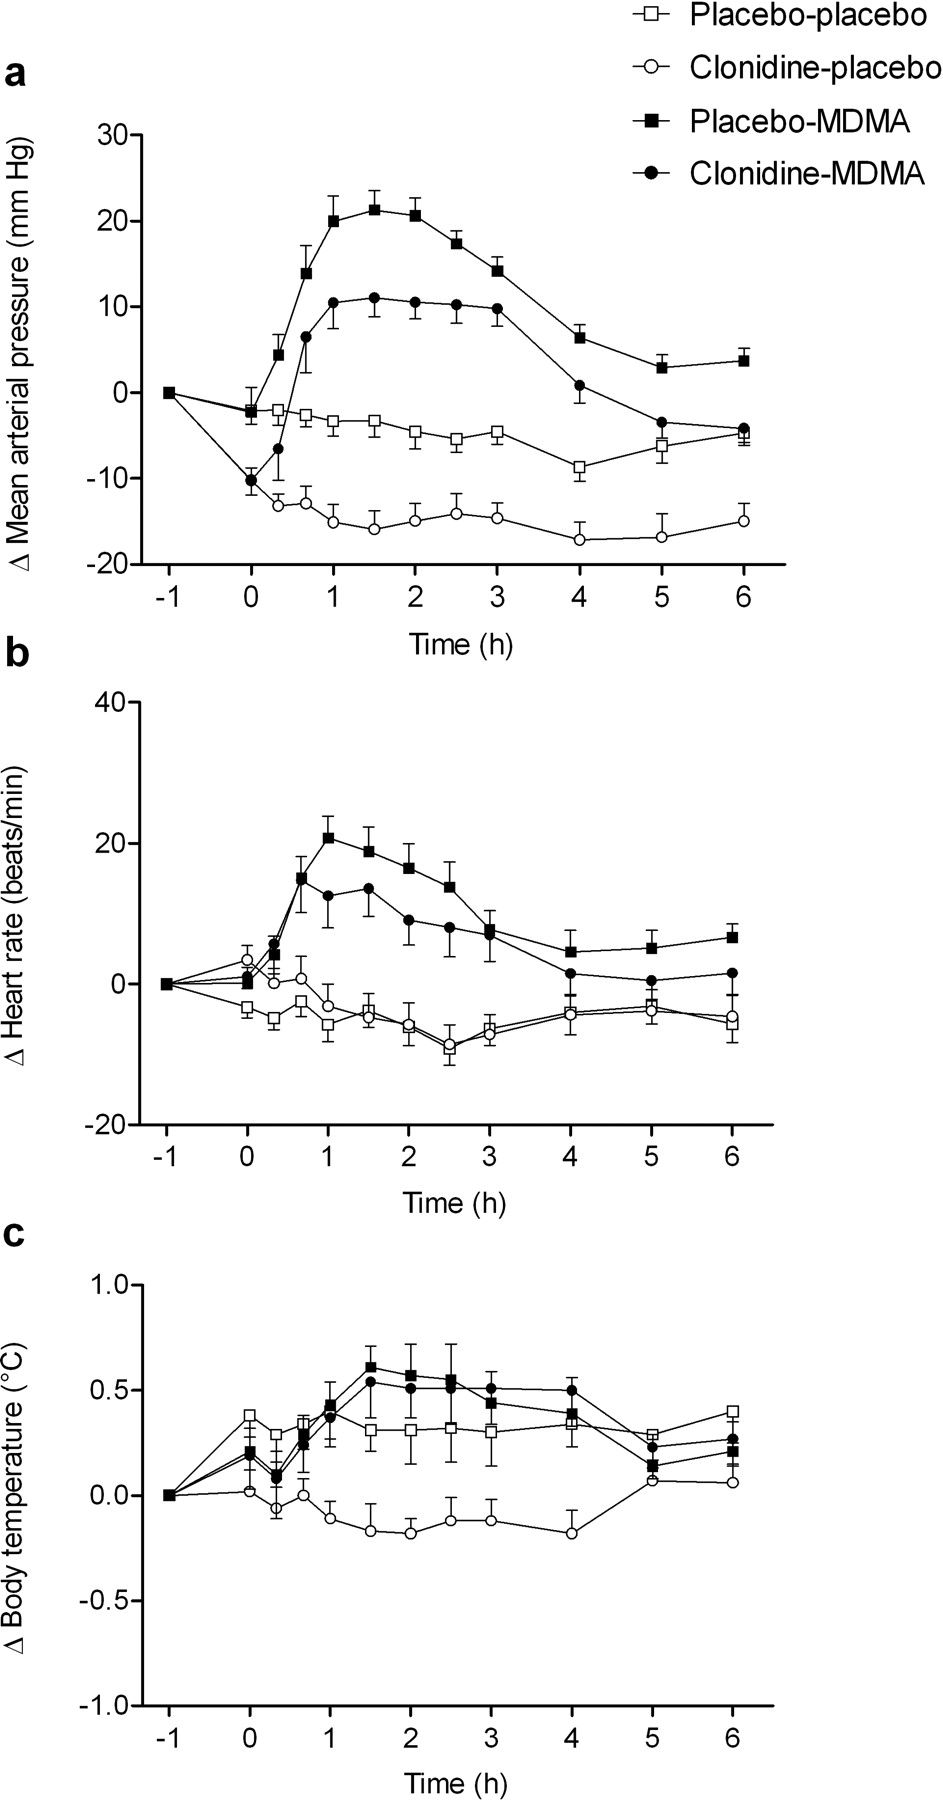 Effects of the α2-Adrenergic Agonist Clonidine on the